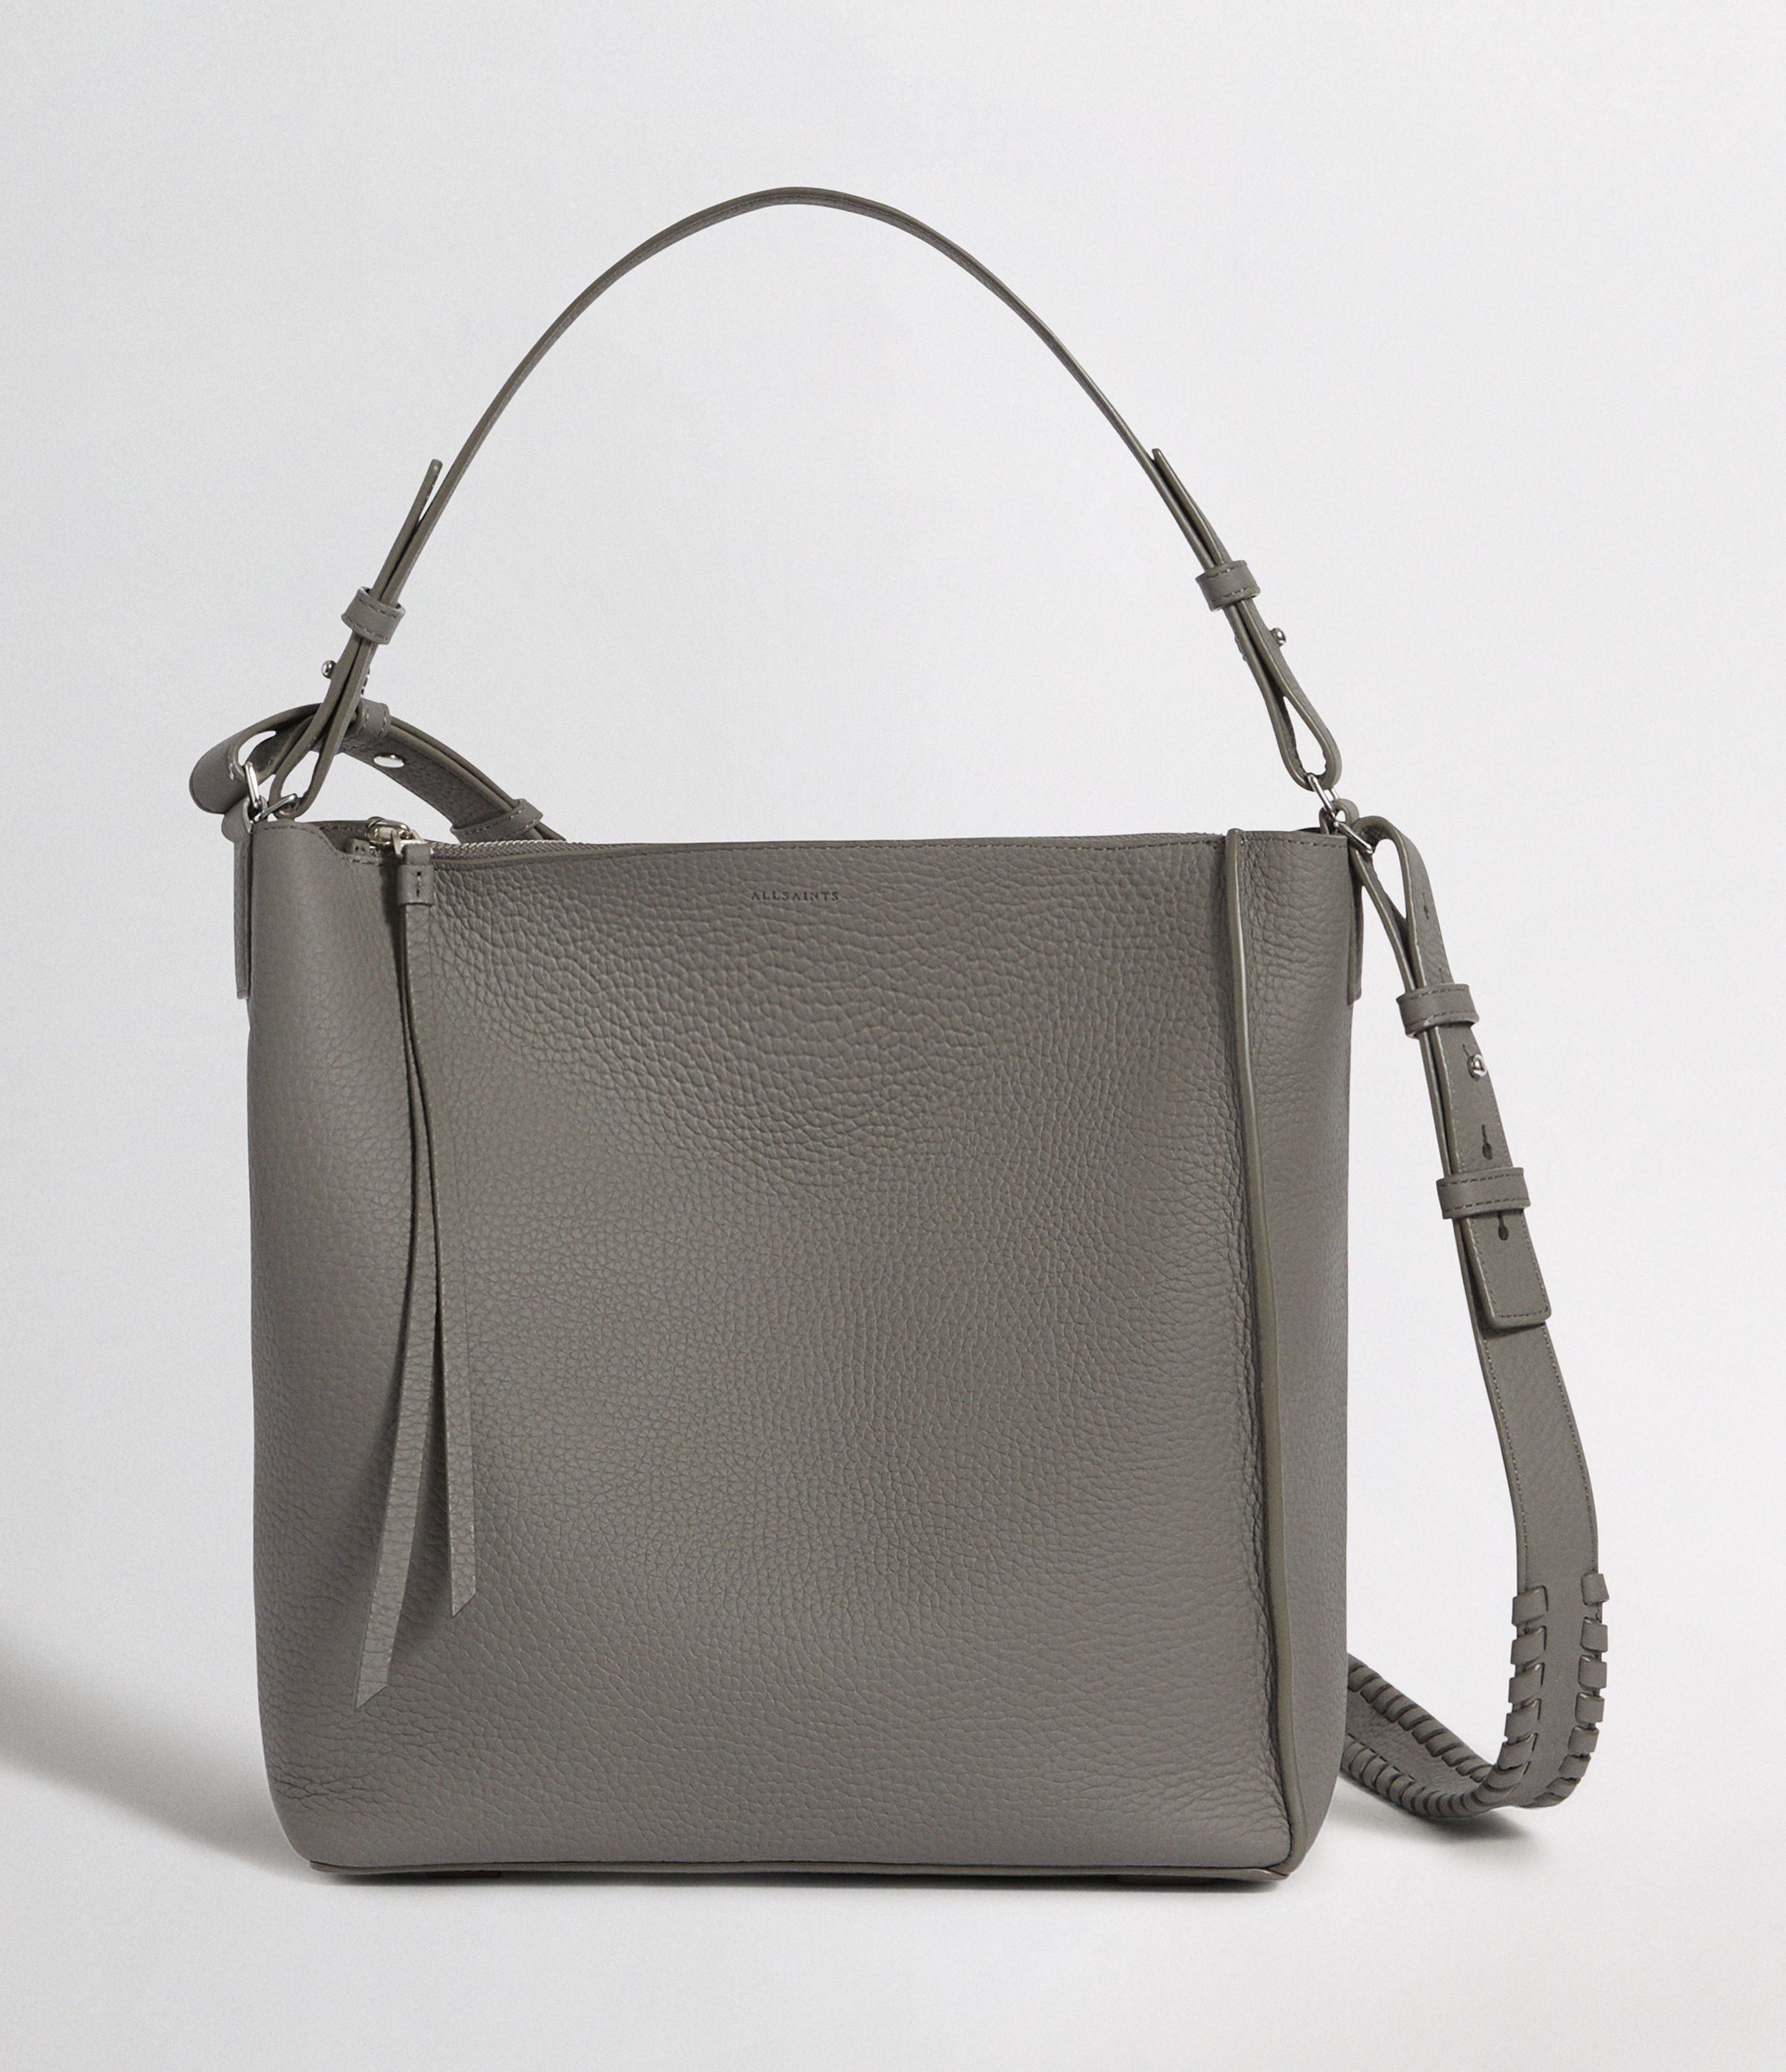 AllSaints Women's Leather Kita Crossbody Bag, Grey